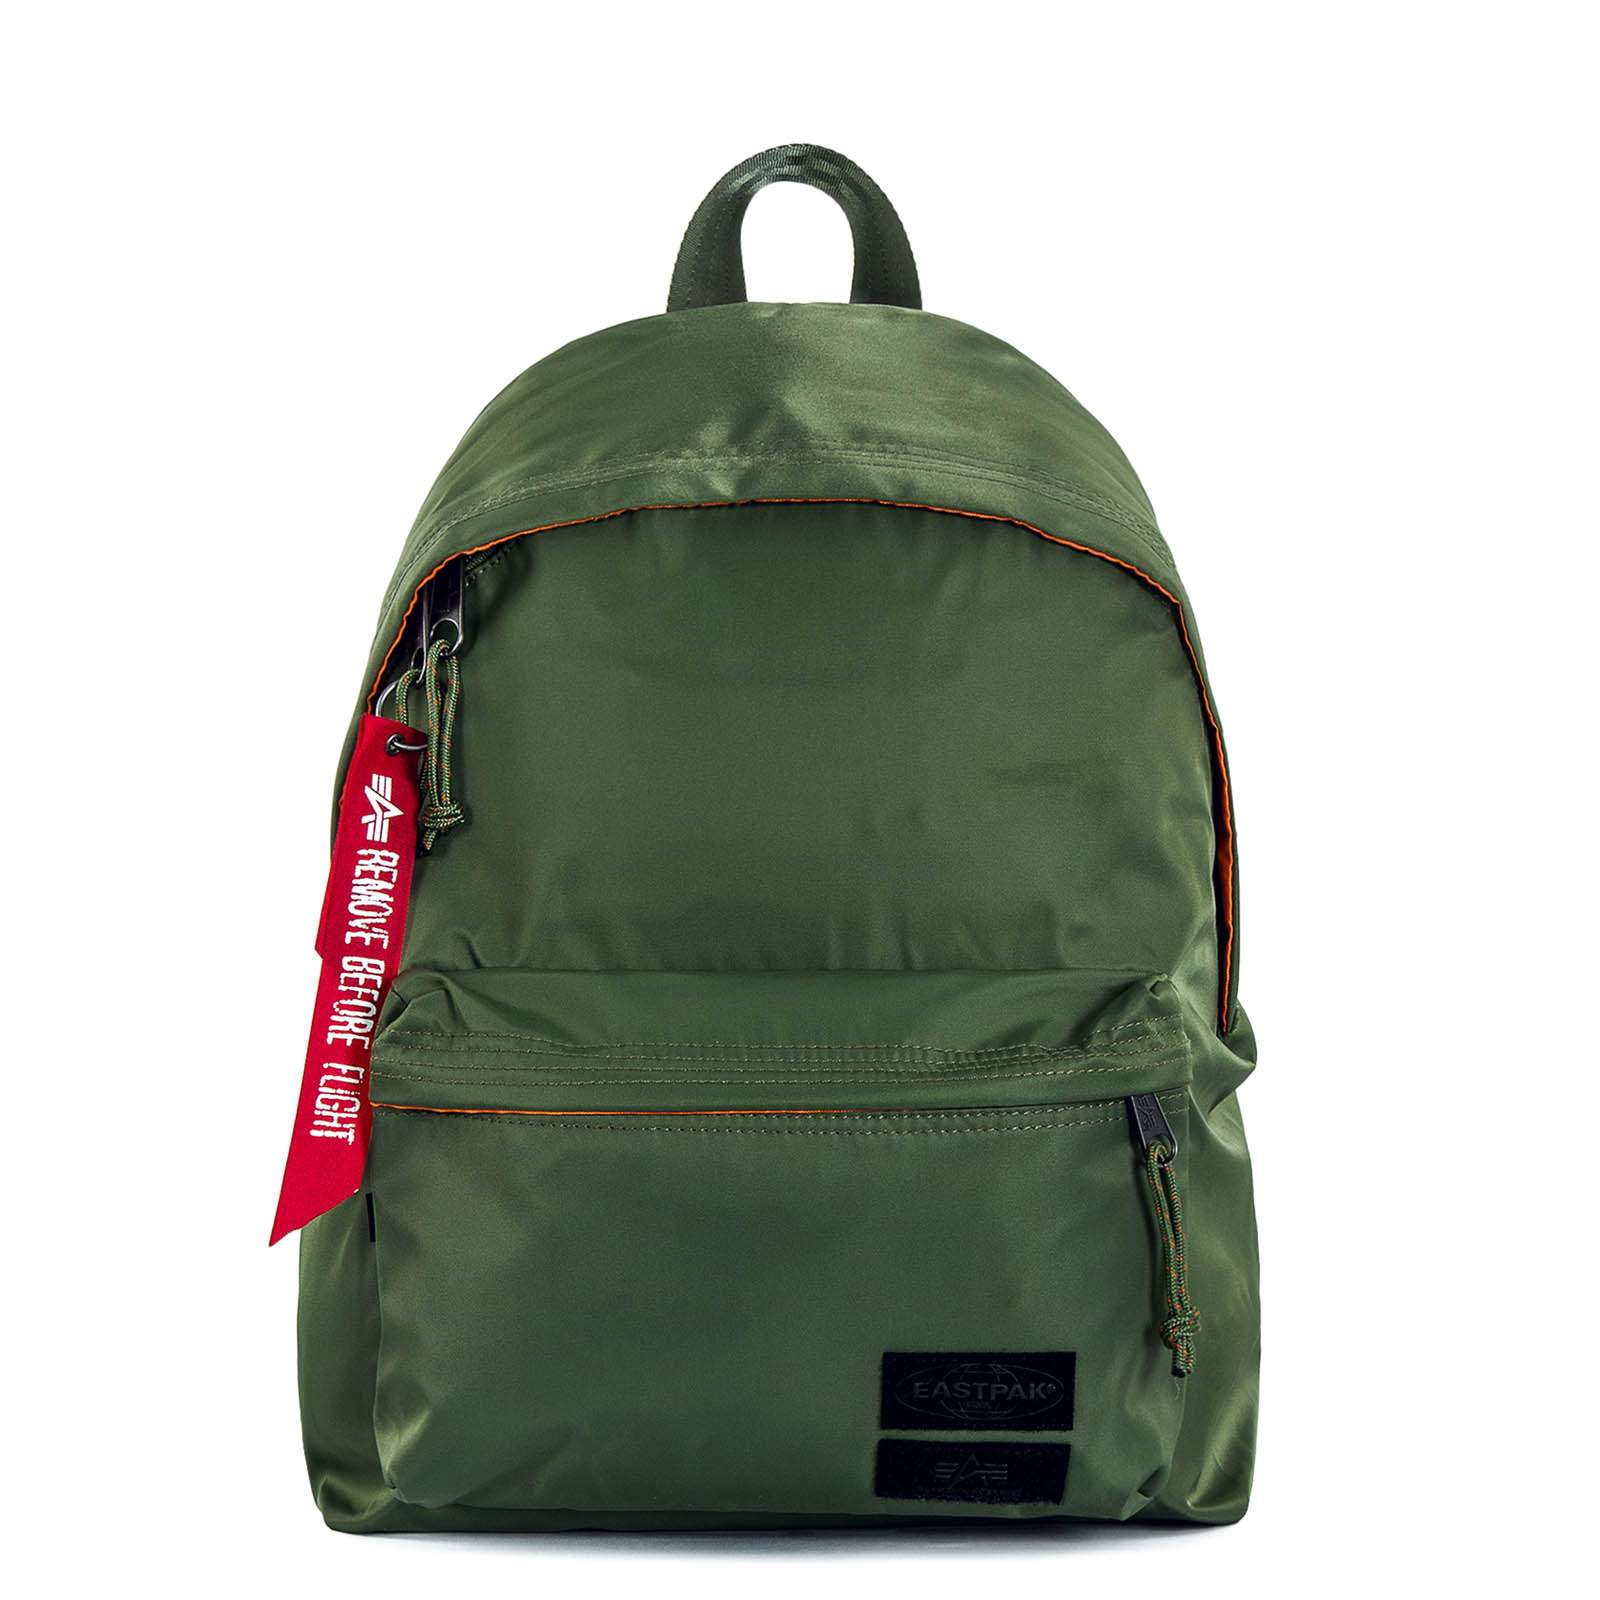 factory authentic exquisite style affordable price Rucksack Padded Sage Green